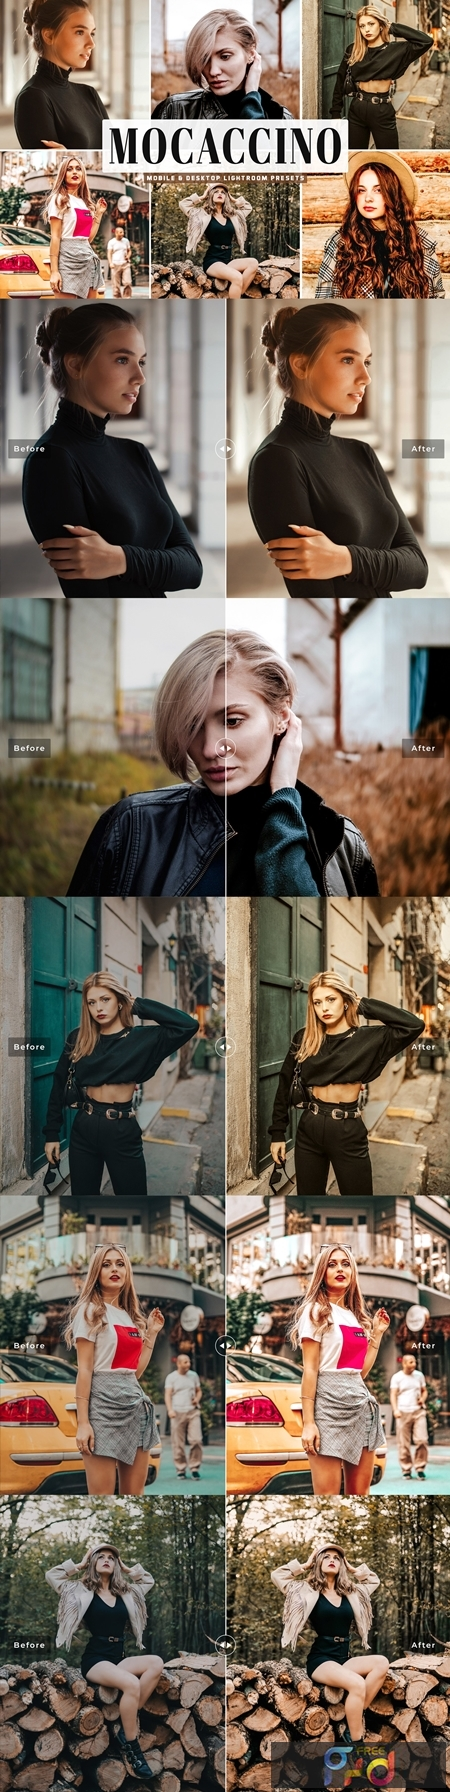 Mocaccino Lightroom Presets Pack 4659467 1